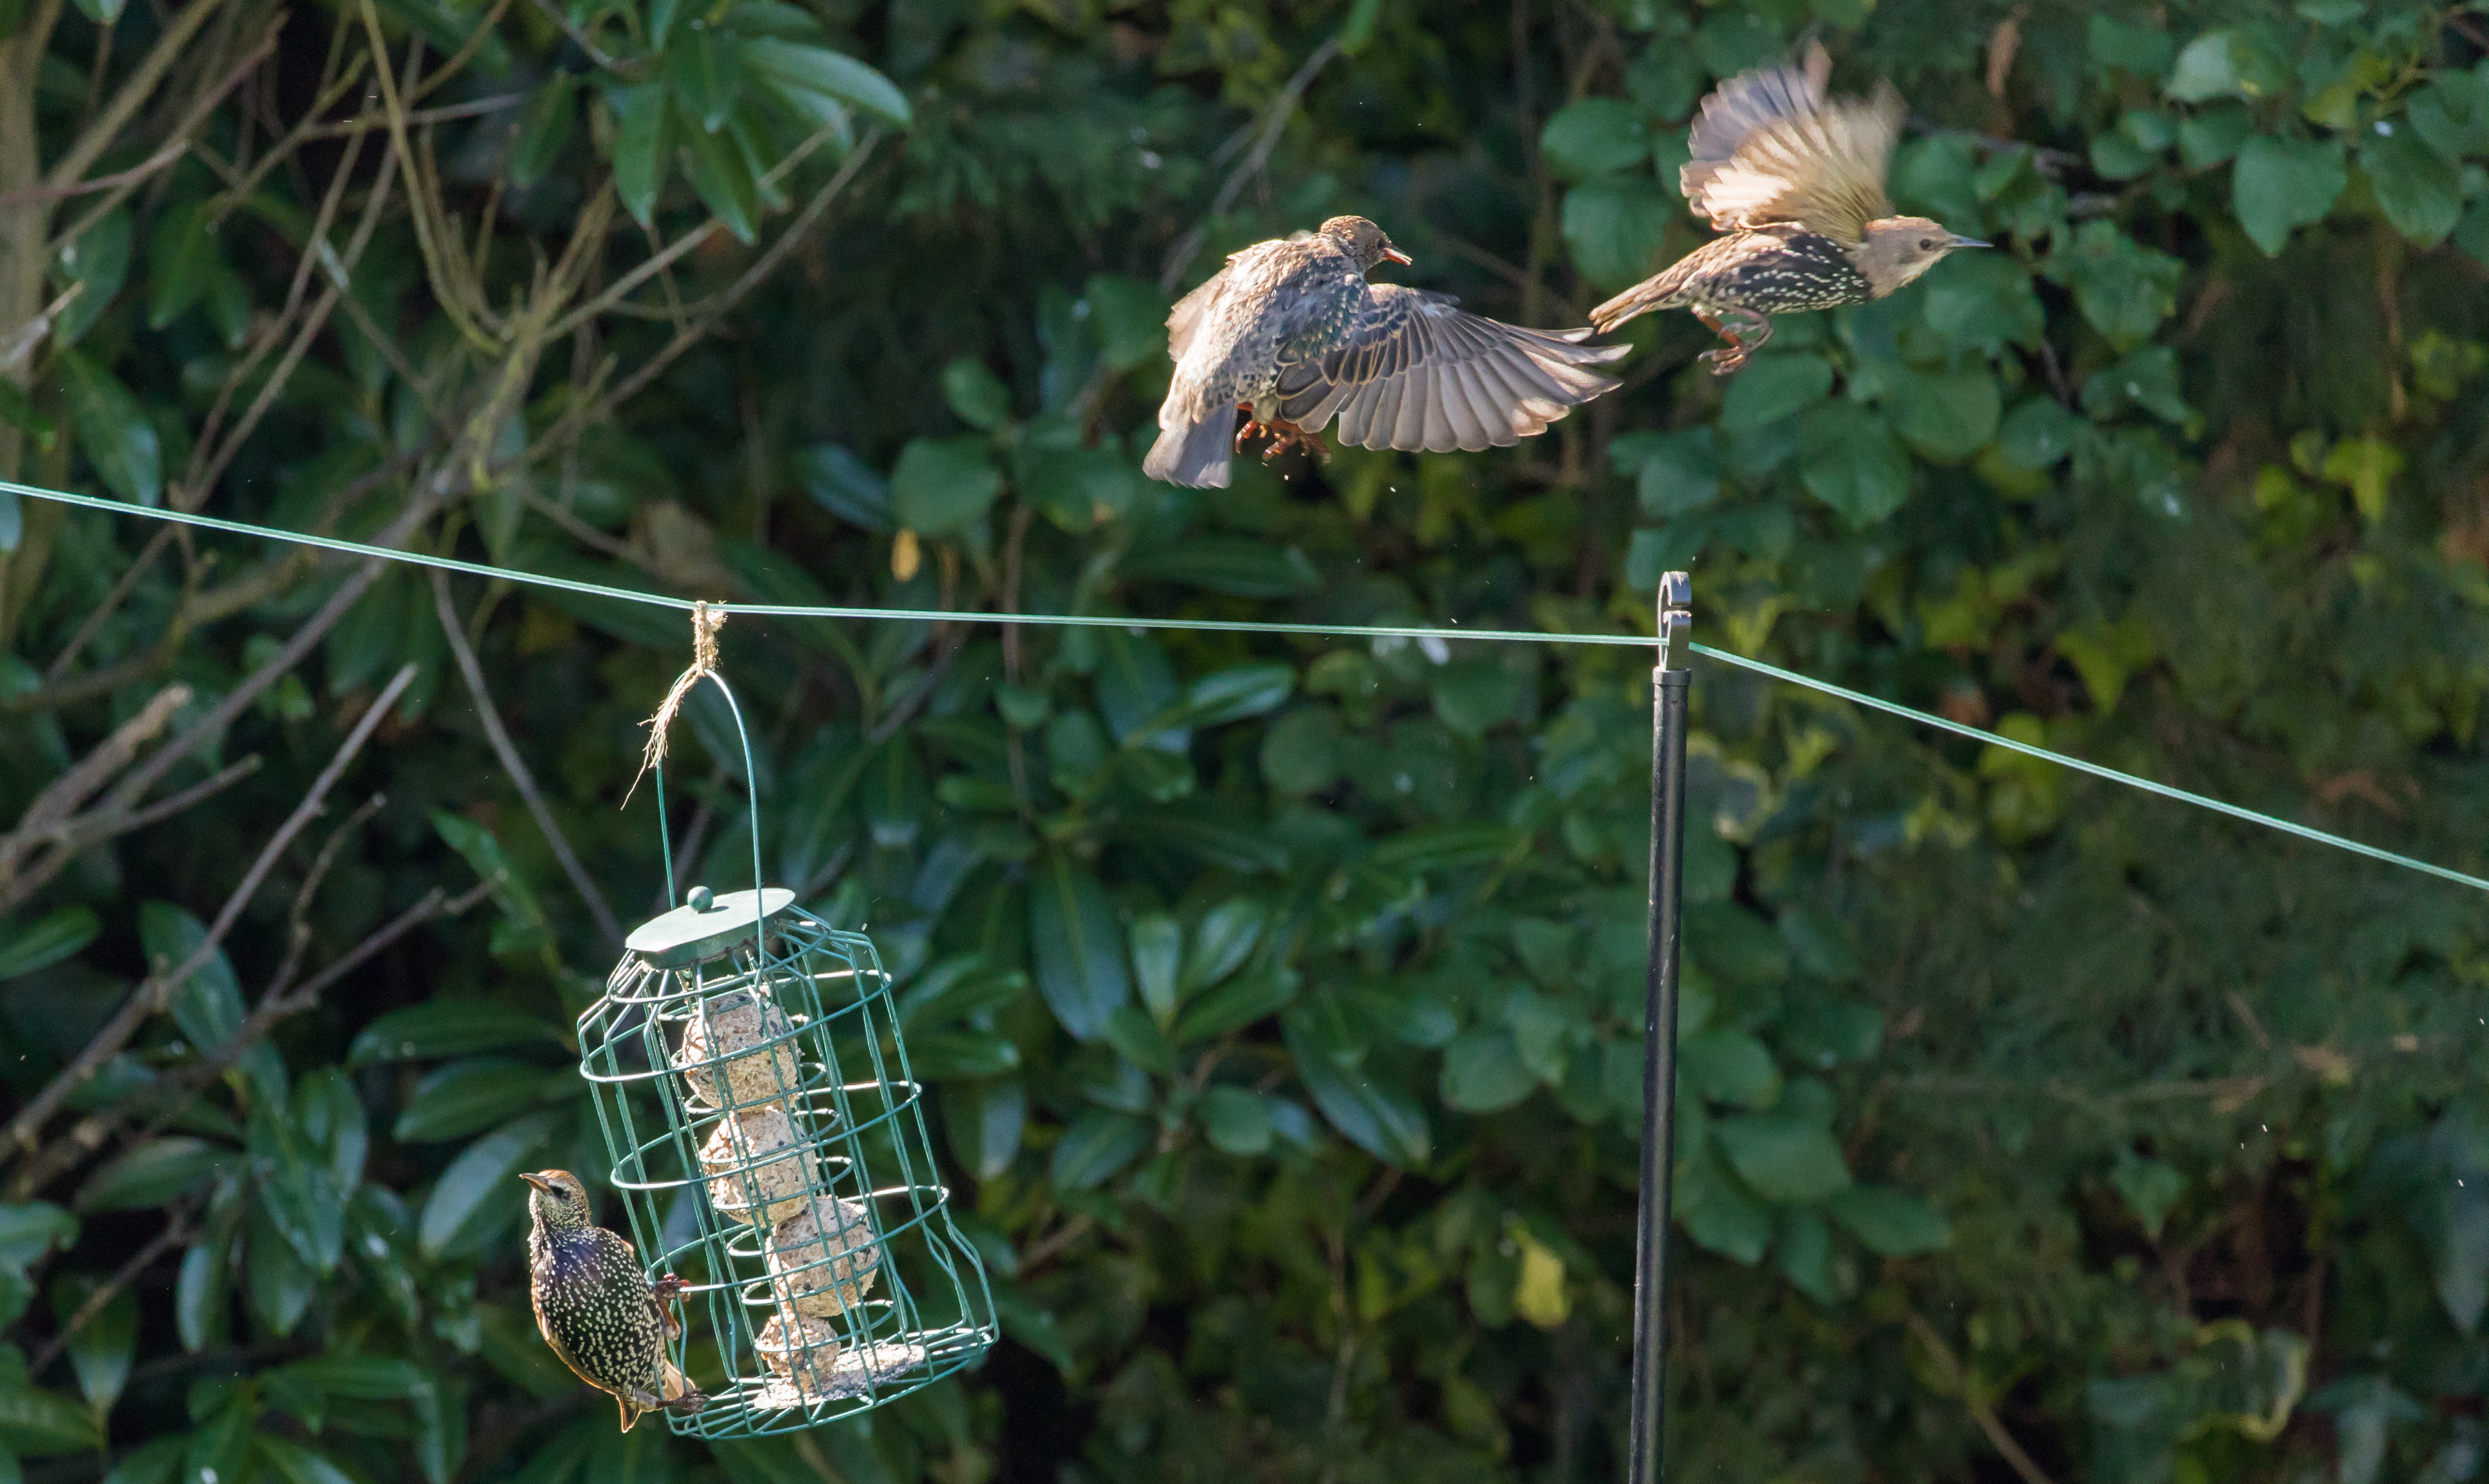 Photograph of starlings around a bird feeder